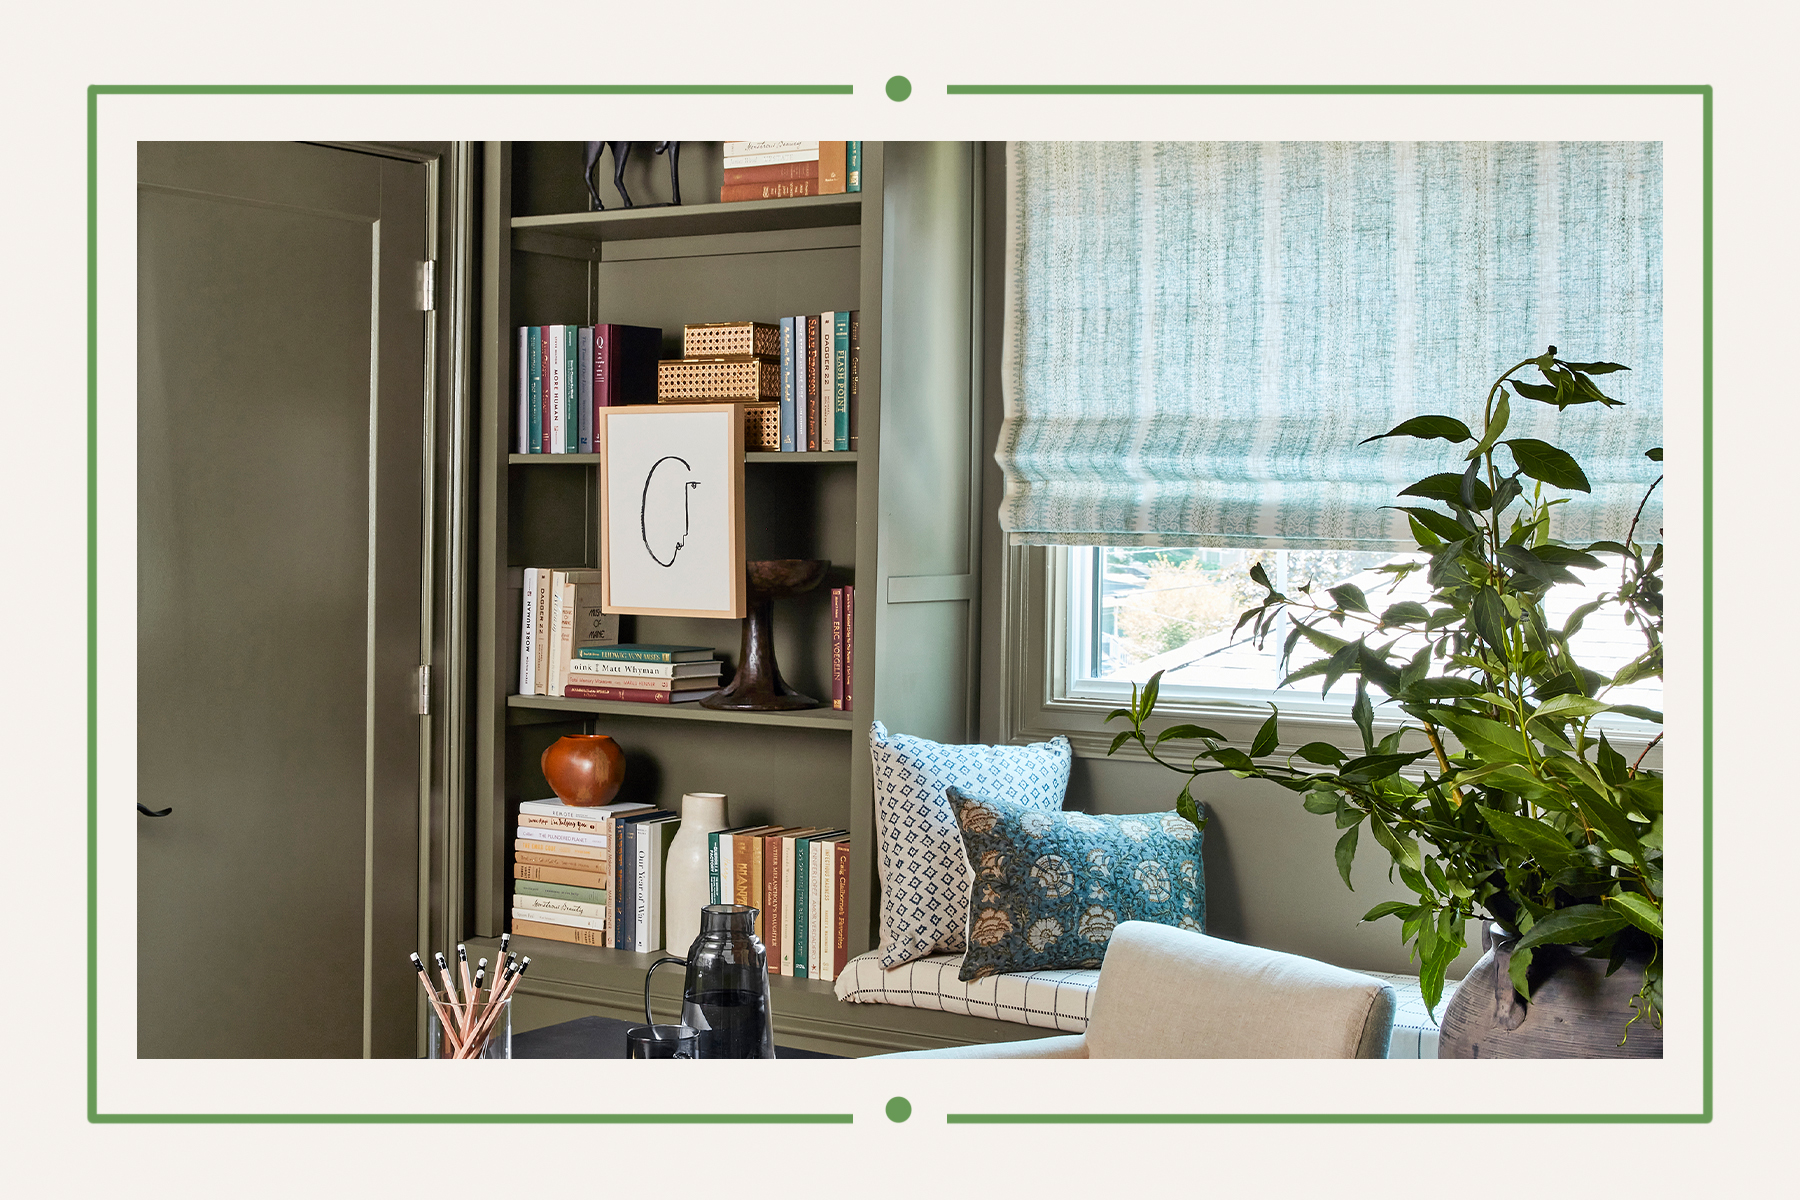 Green office space with bookshelves